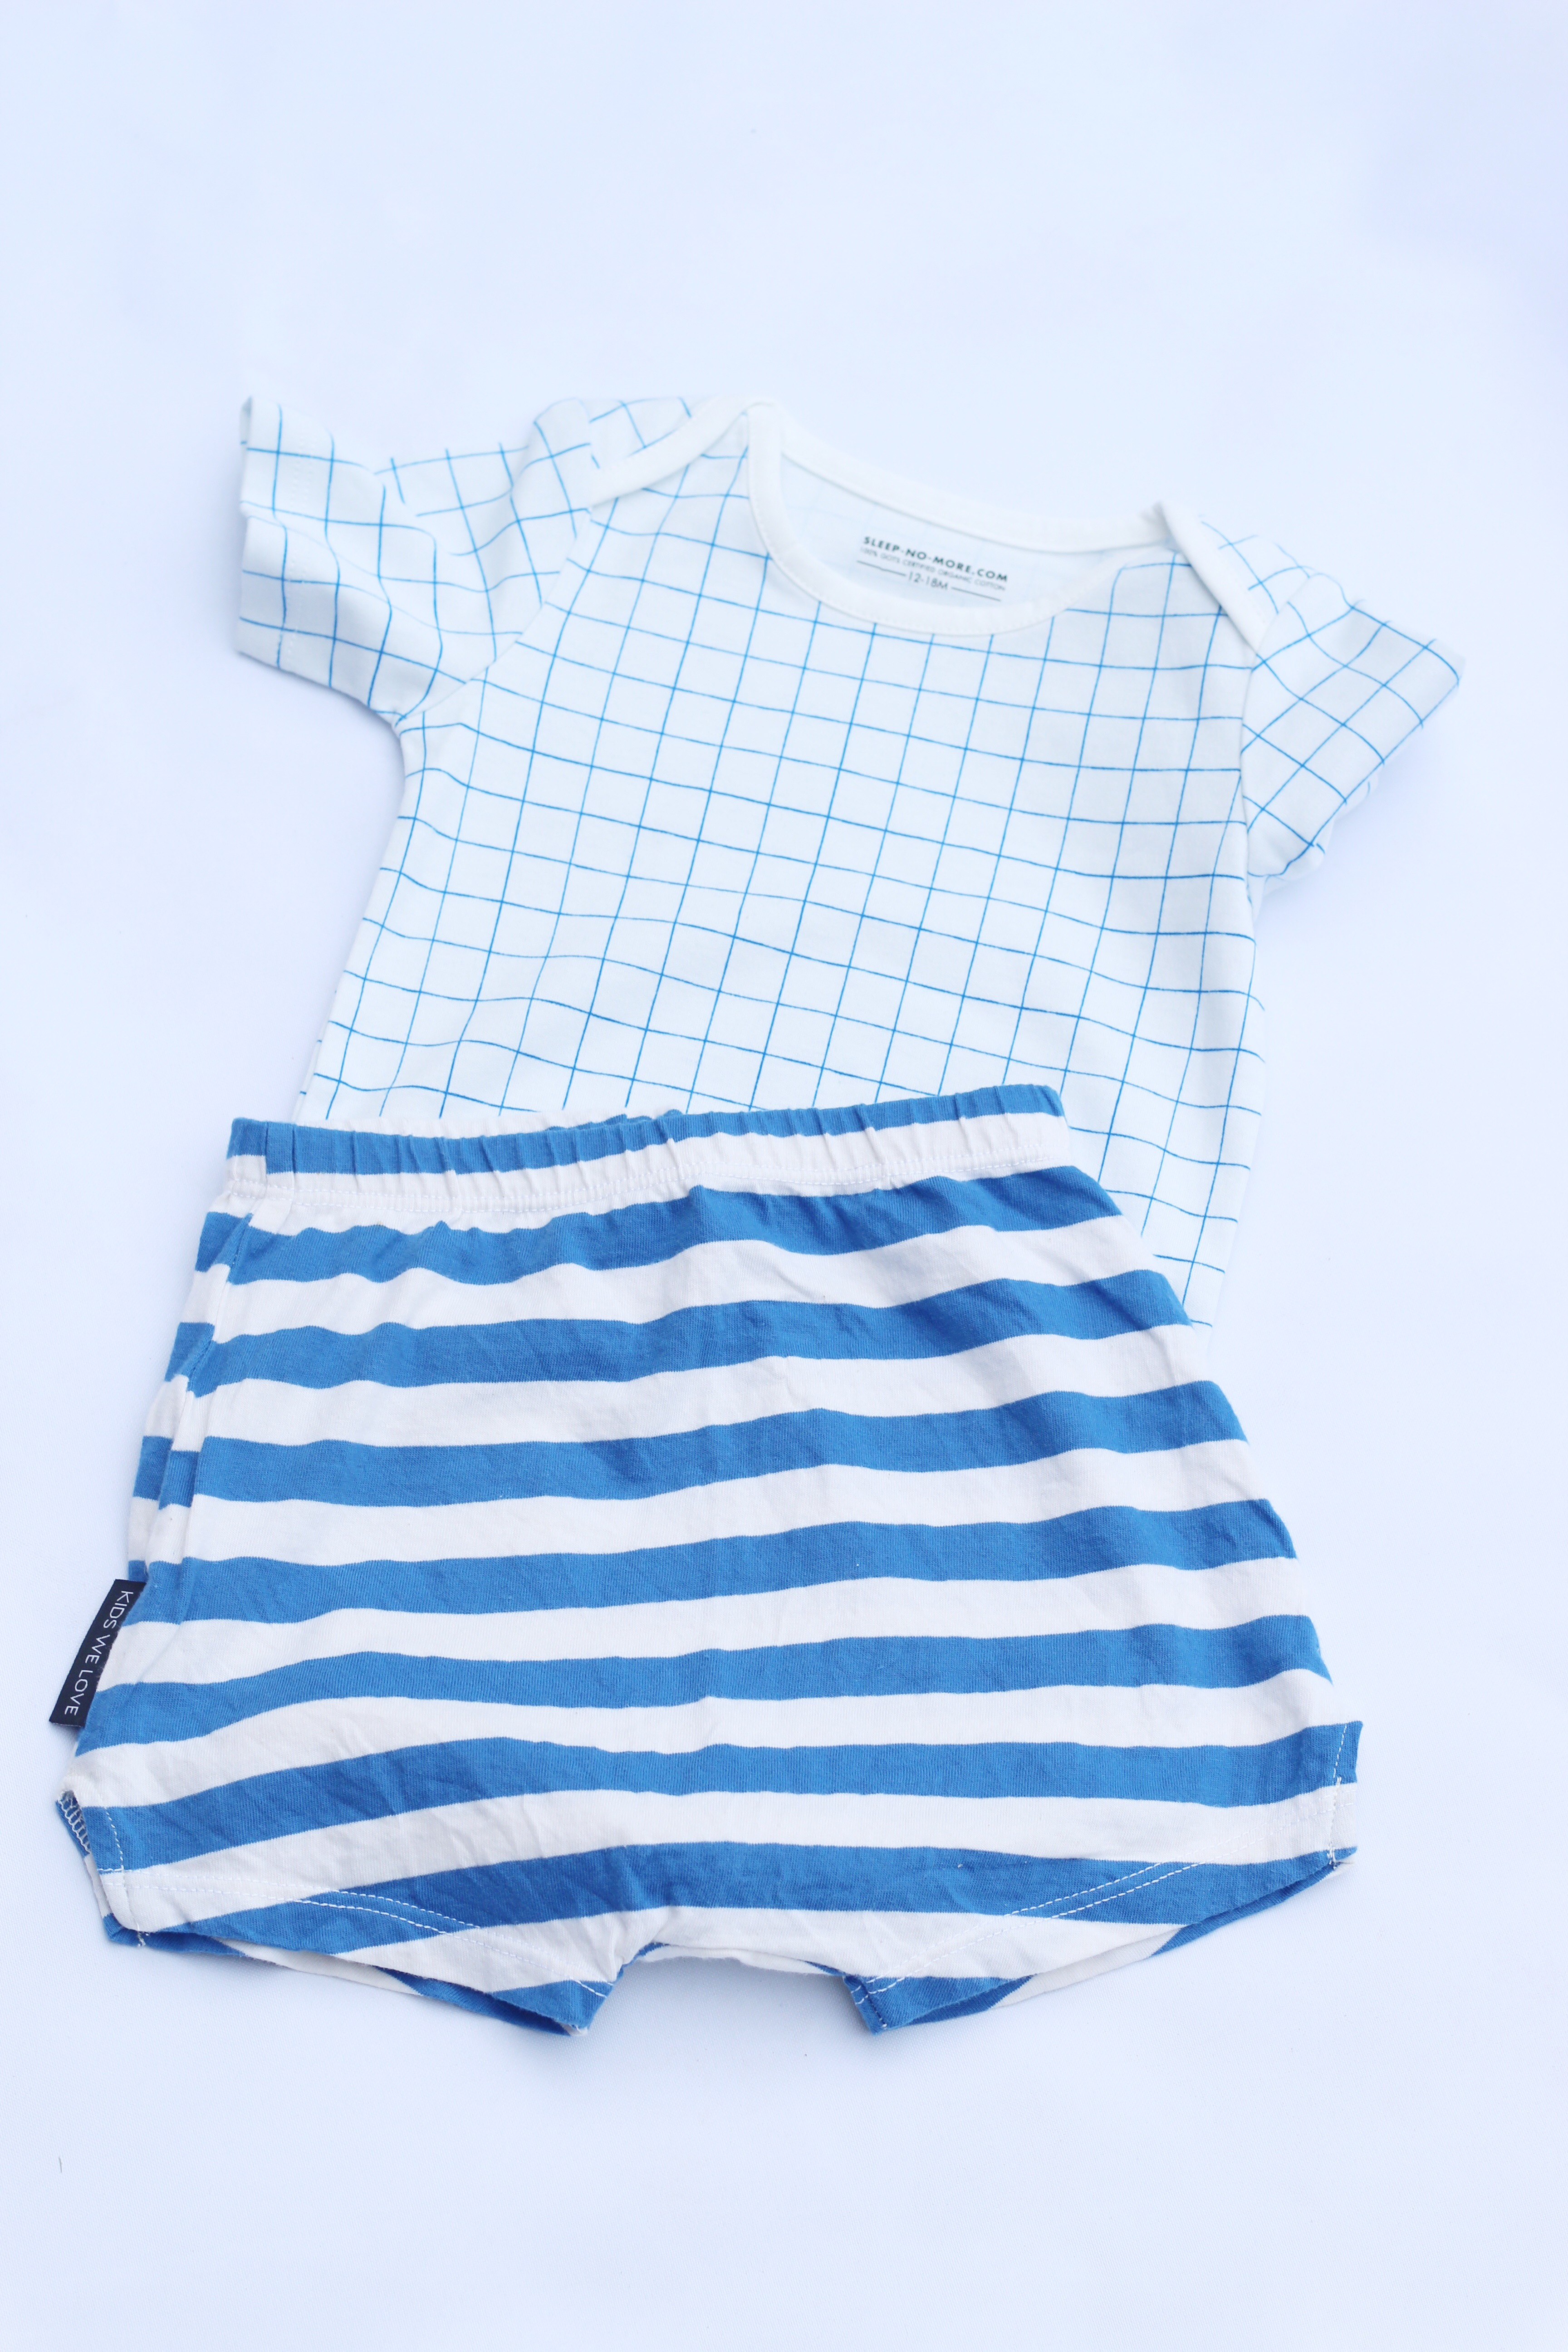 BABY FASHION | The Life of Nandy